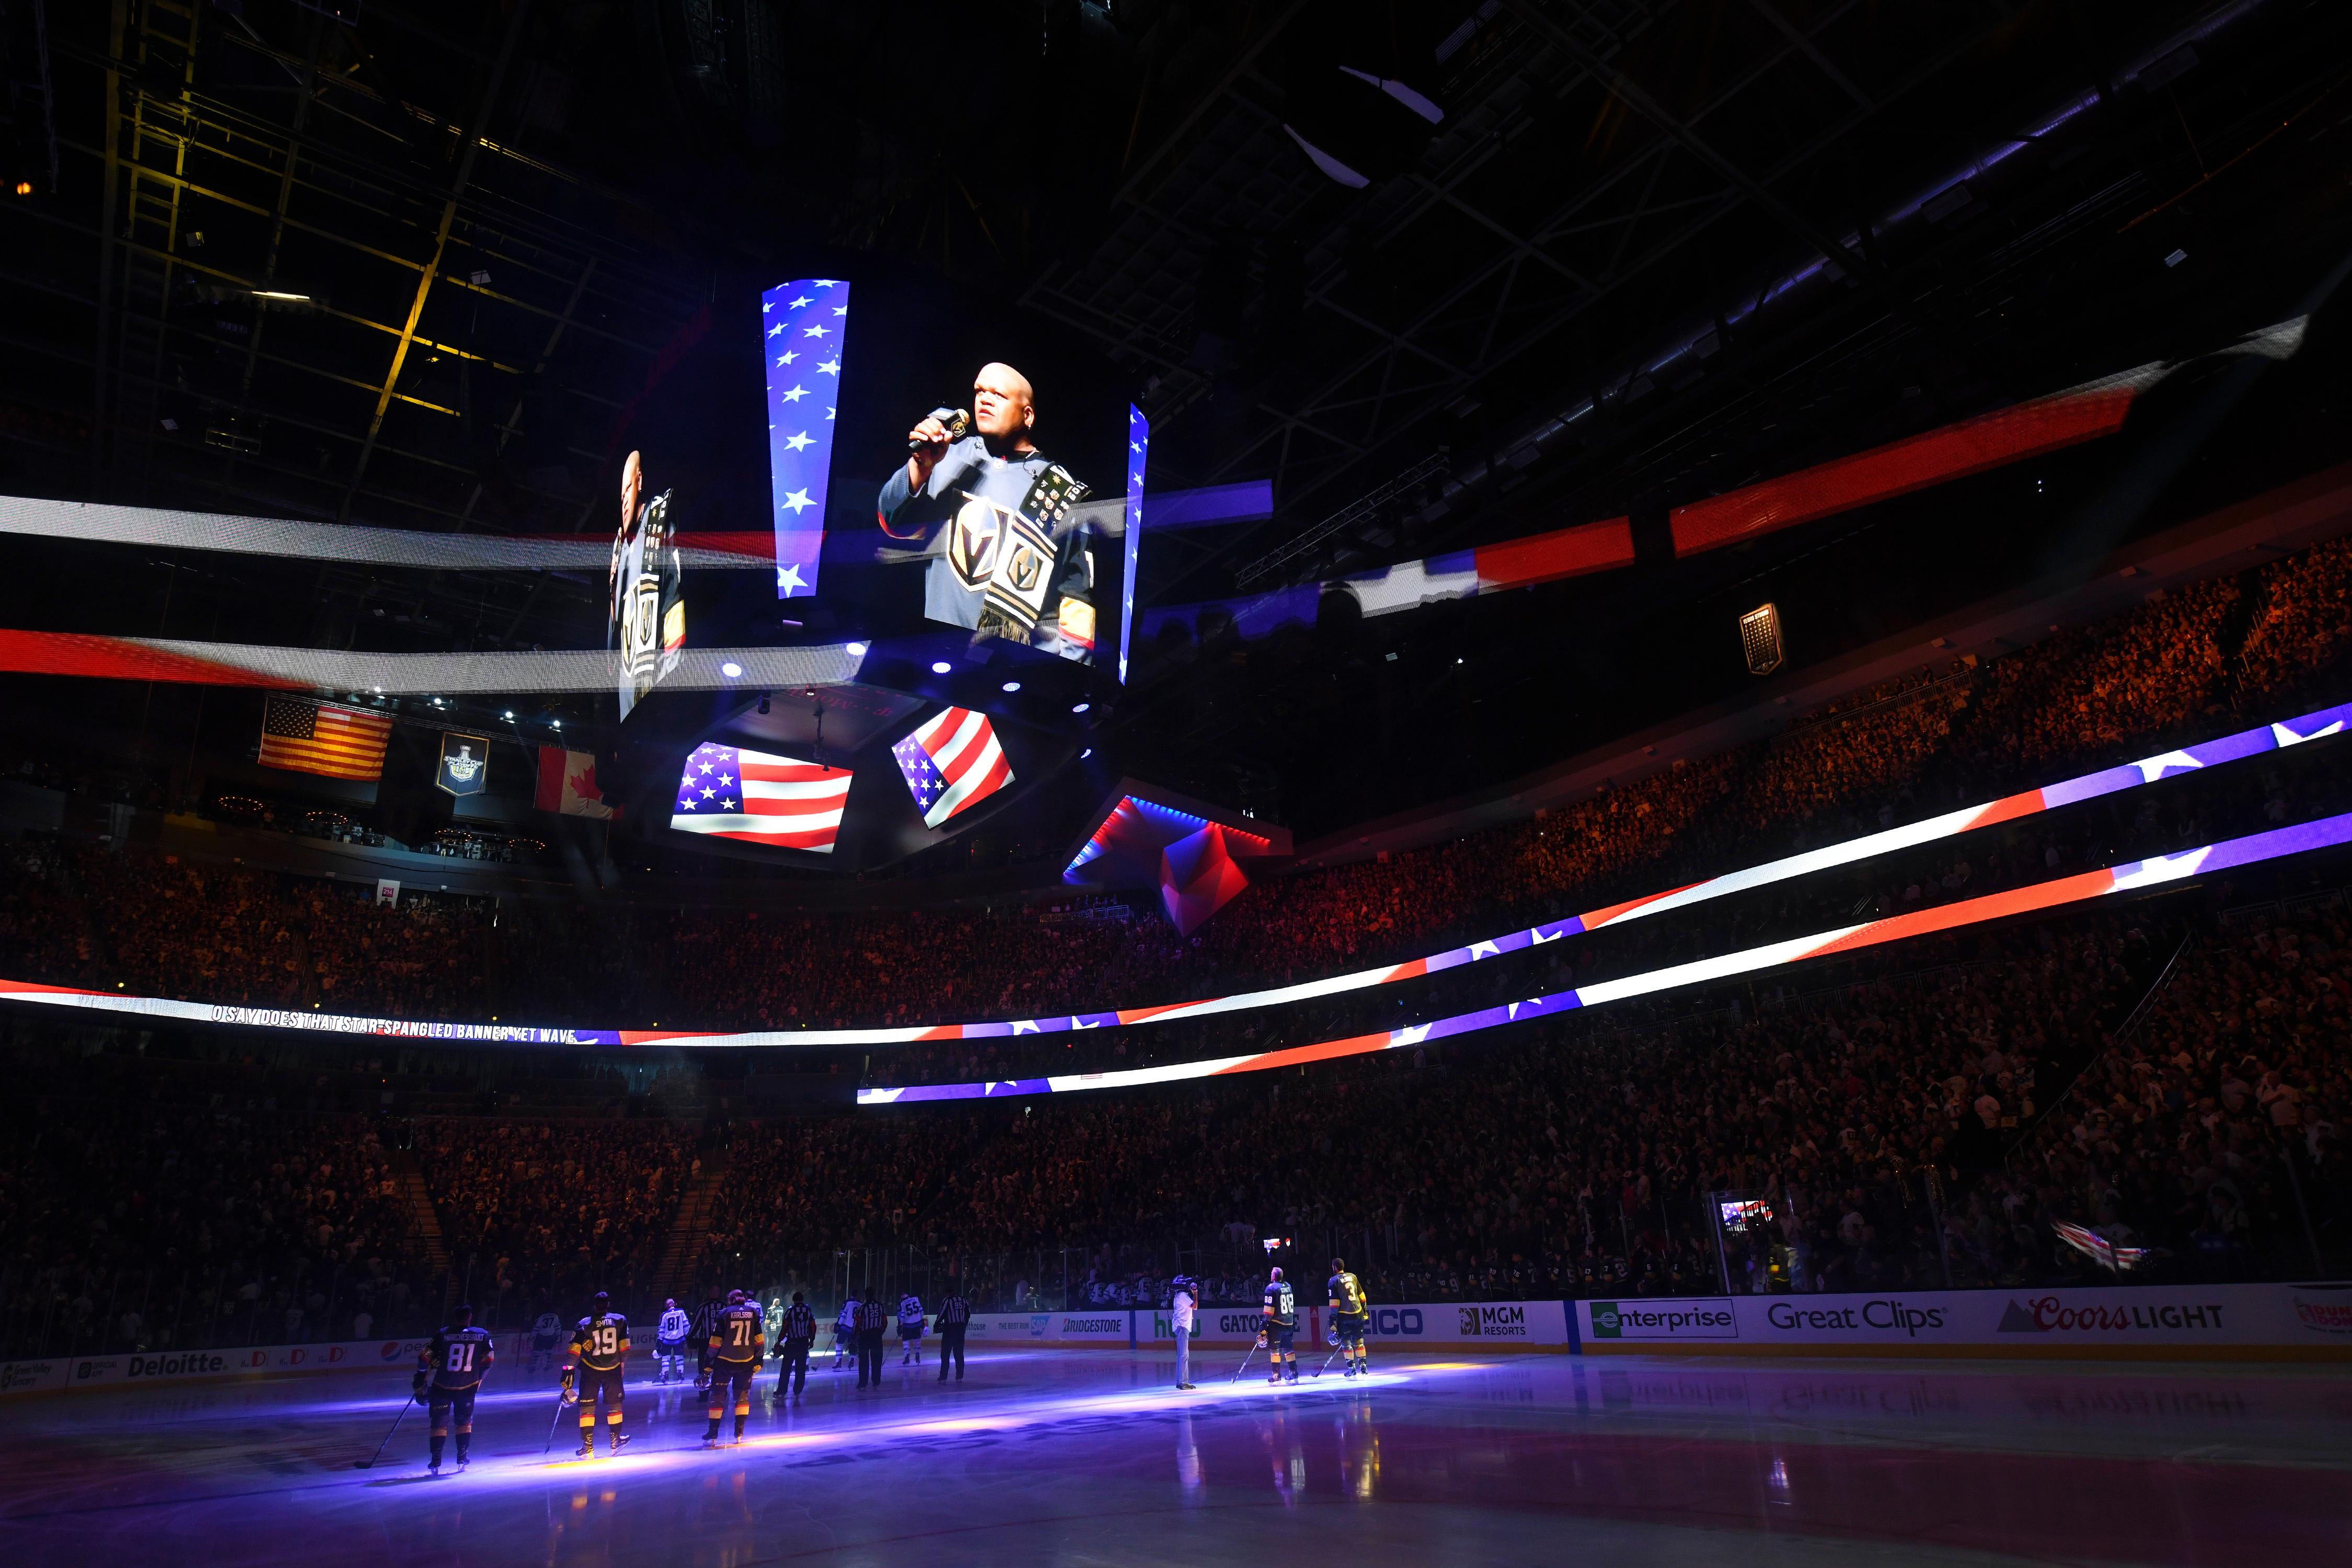 Carnell Johnson is projected on a video screen while singing the national anthem before Game 3 of the Vegas Golden Knights NHL hockey Western Conference Final game against the Winnipeg Jets Wednesday, May 16, 2018, at T-Mobile Arena. CREDIT: Sam Morris/Las Vegas News Bureau